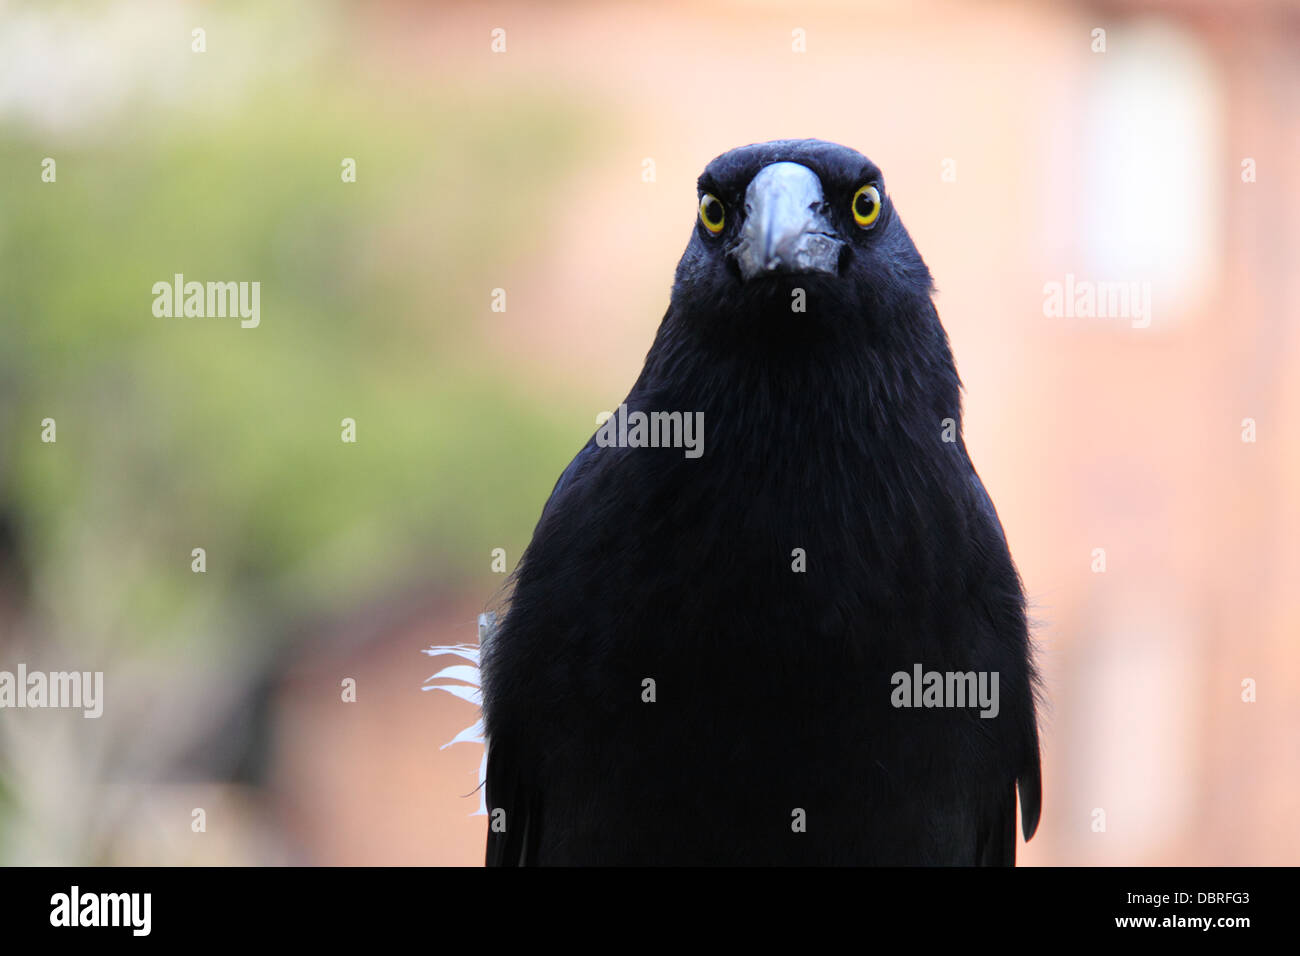 Pied Currawong (Strepera Graculina) - Stock Image